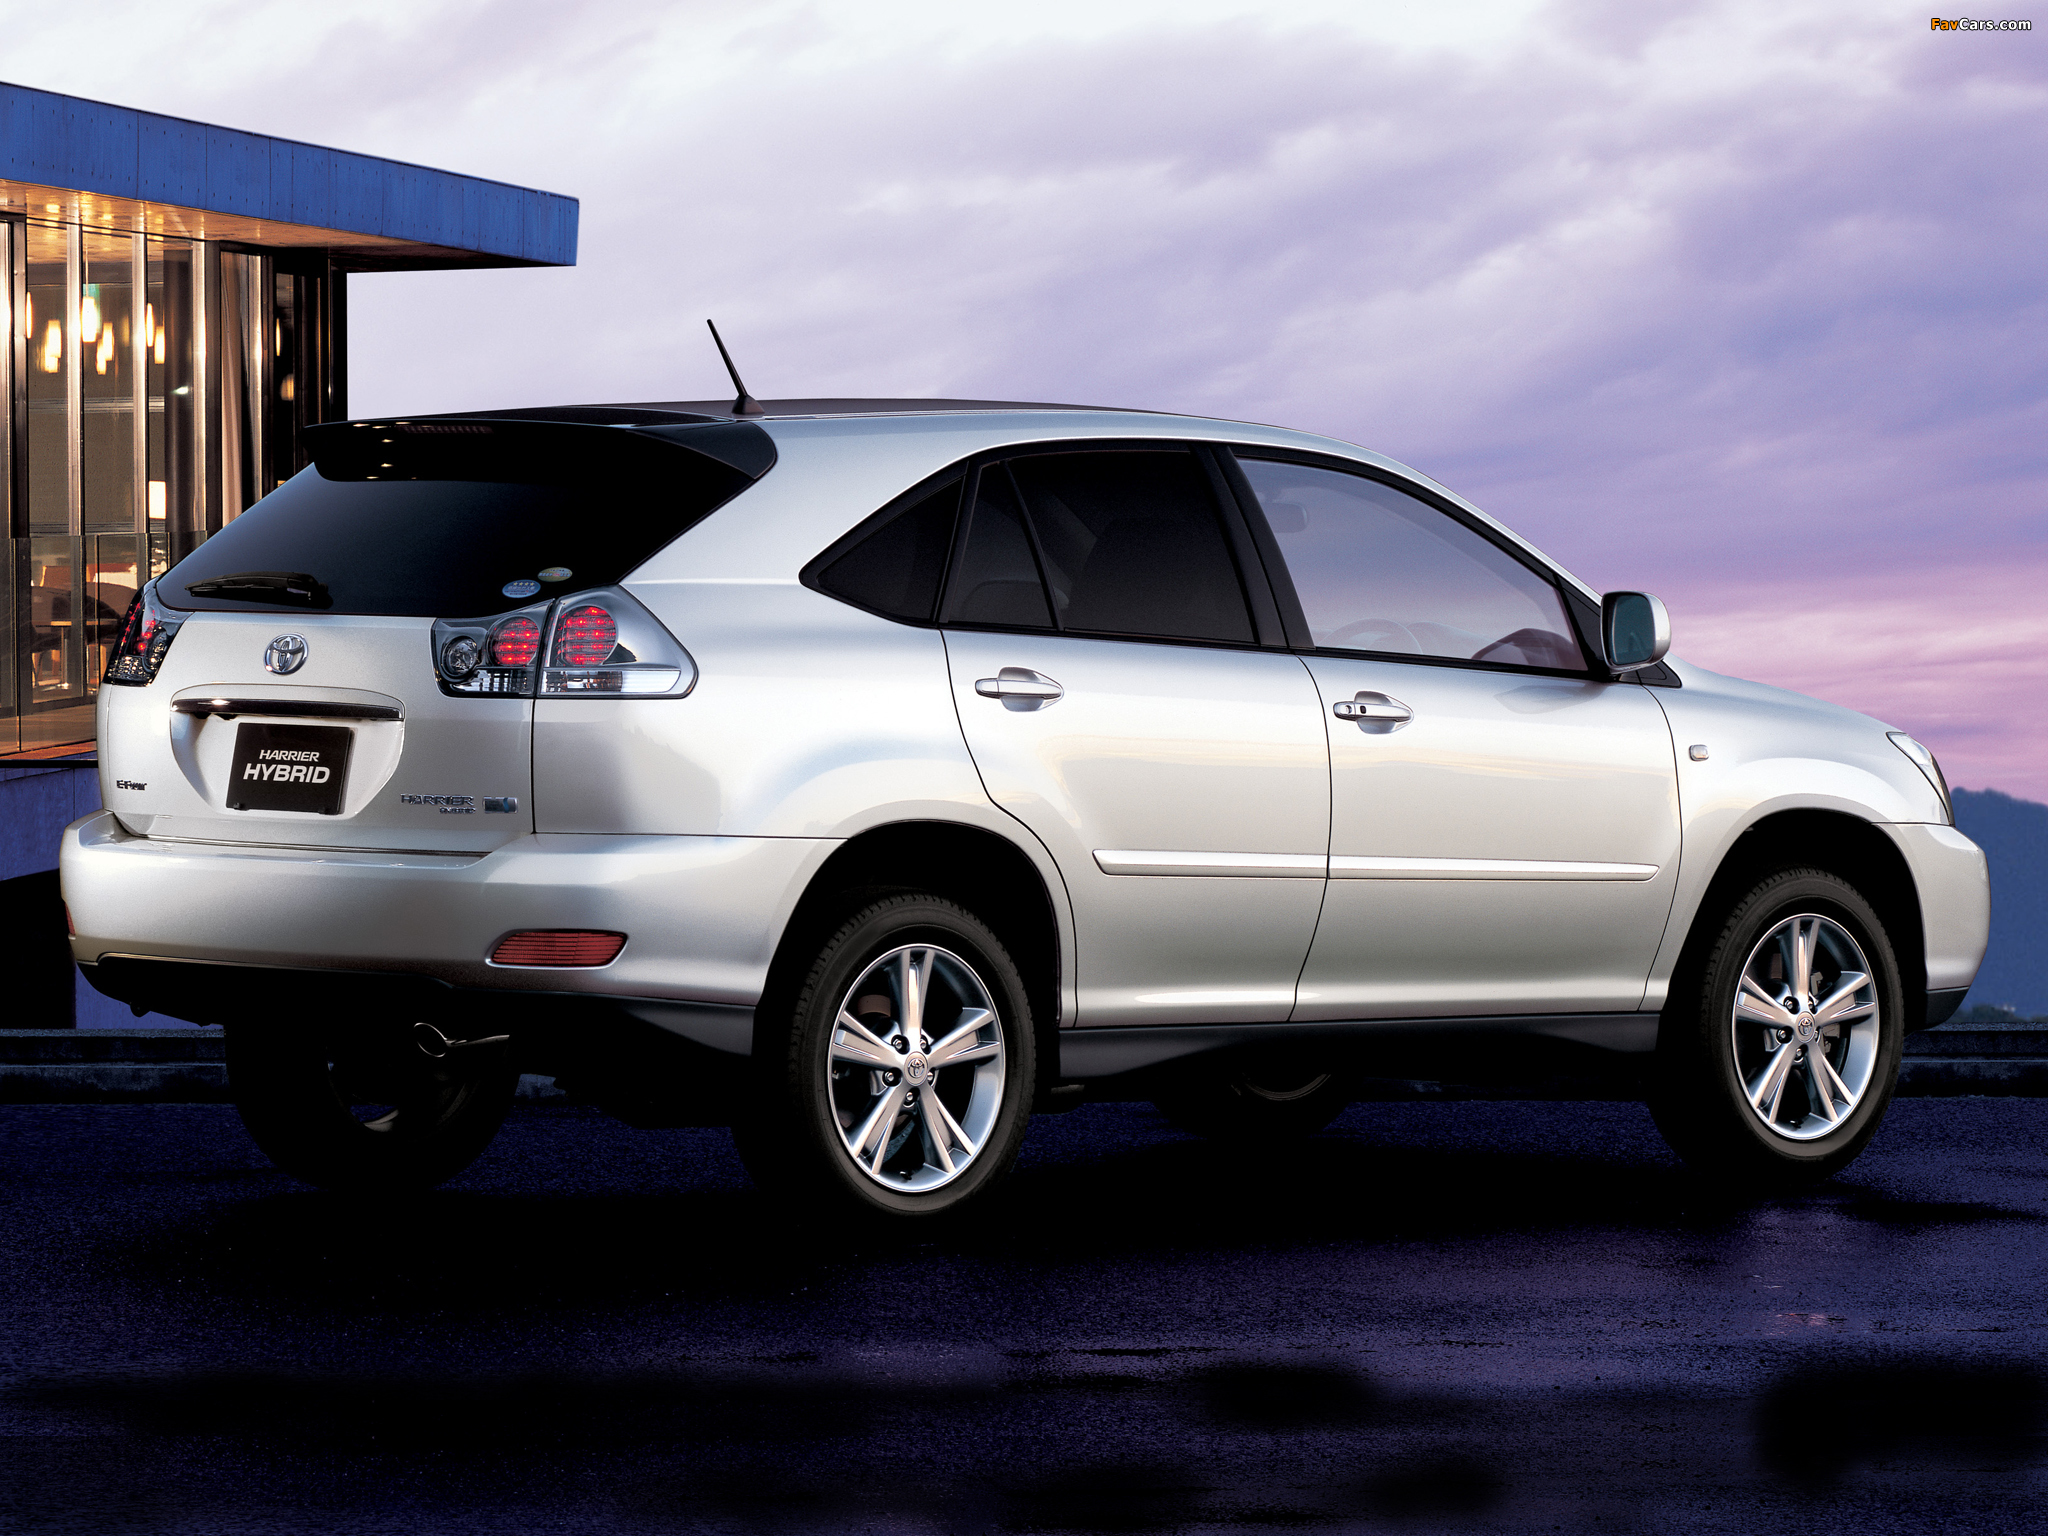 Toyota Harrier 2005 photo - 5